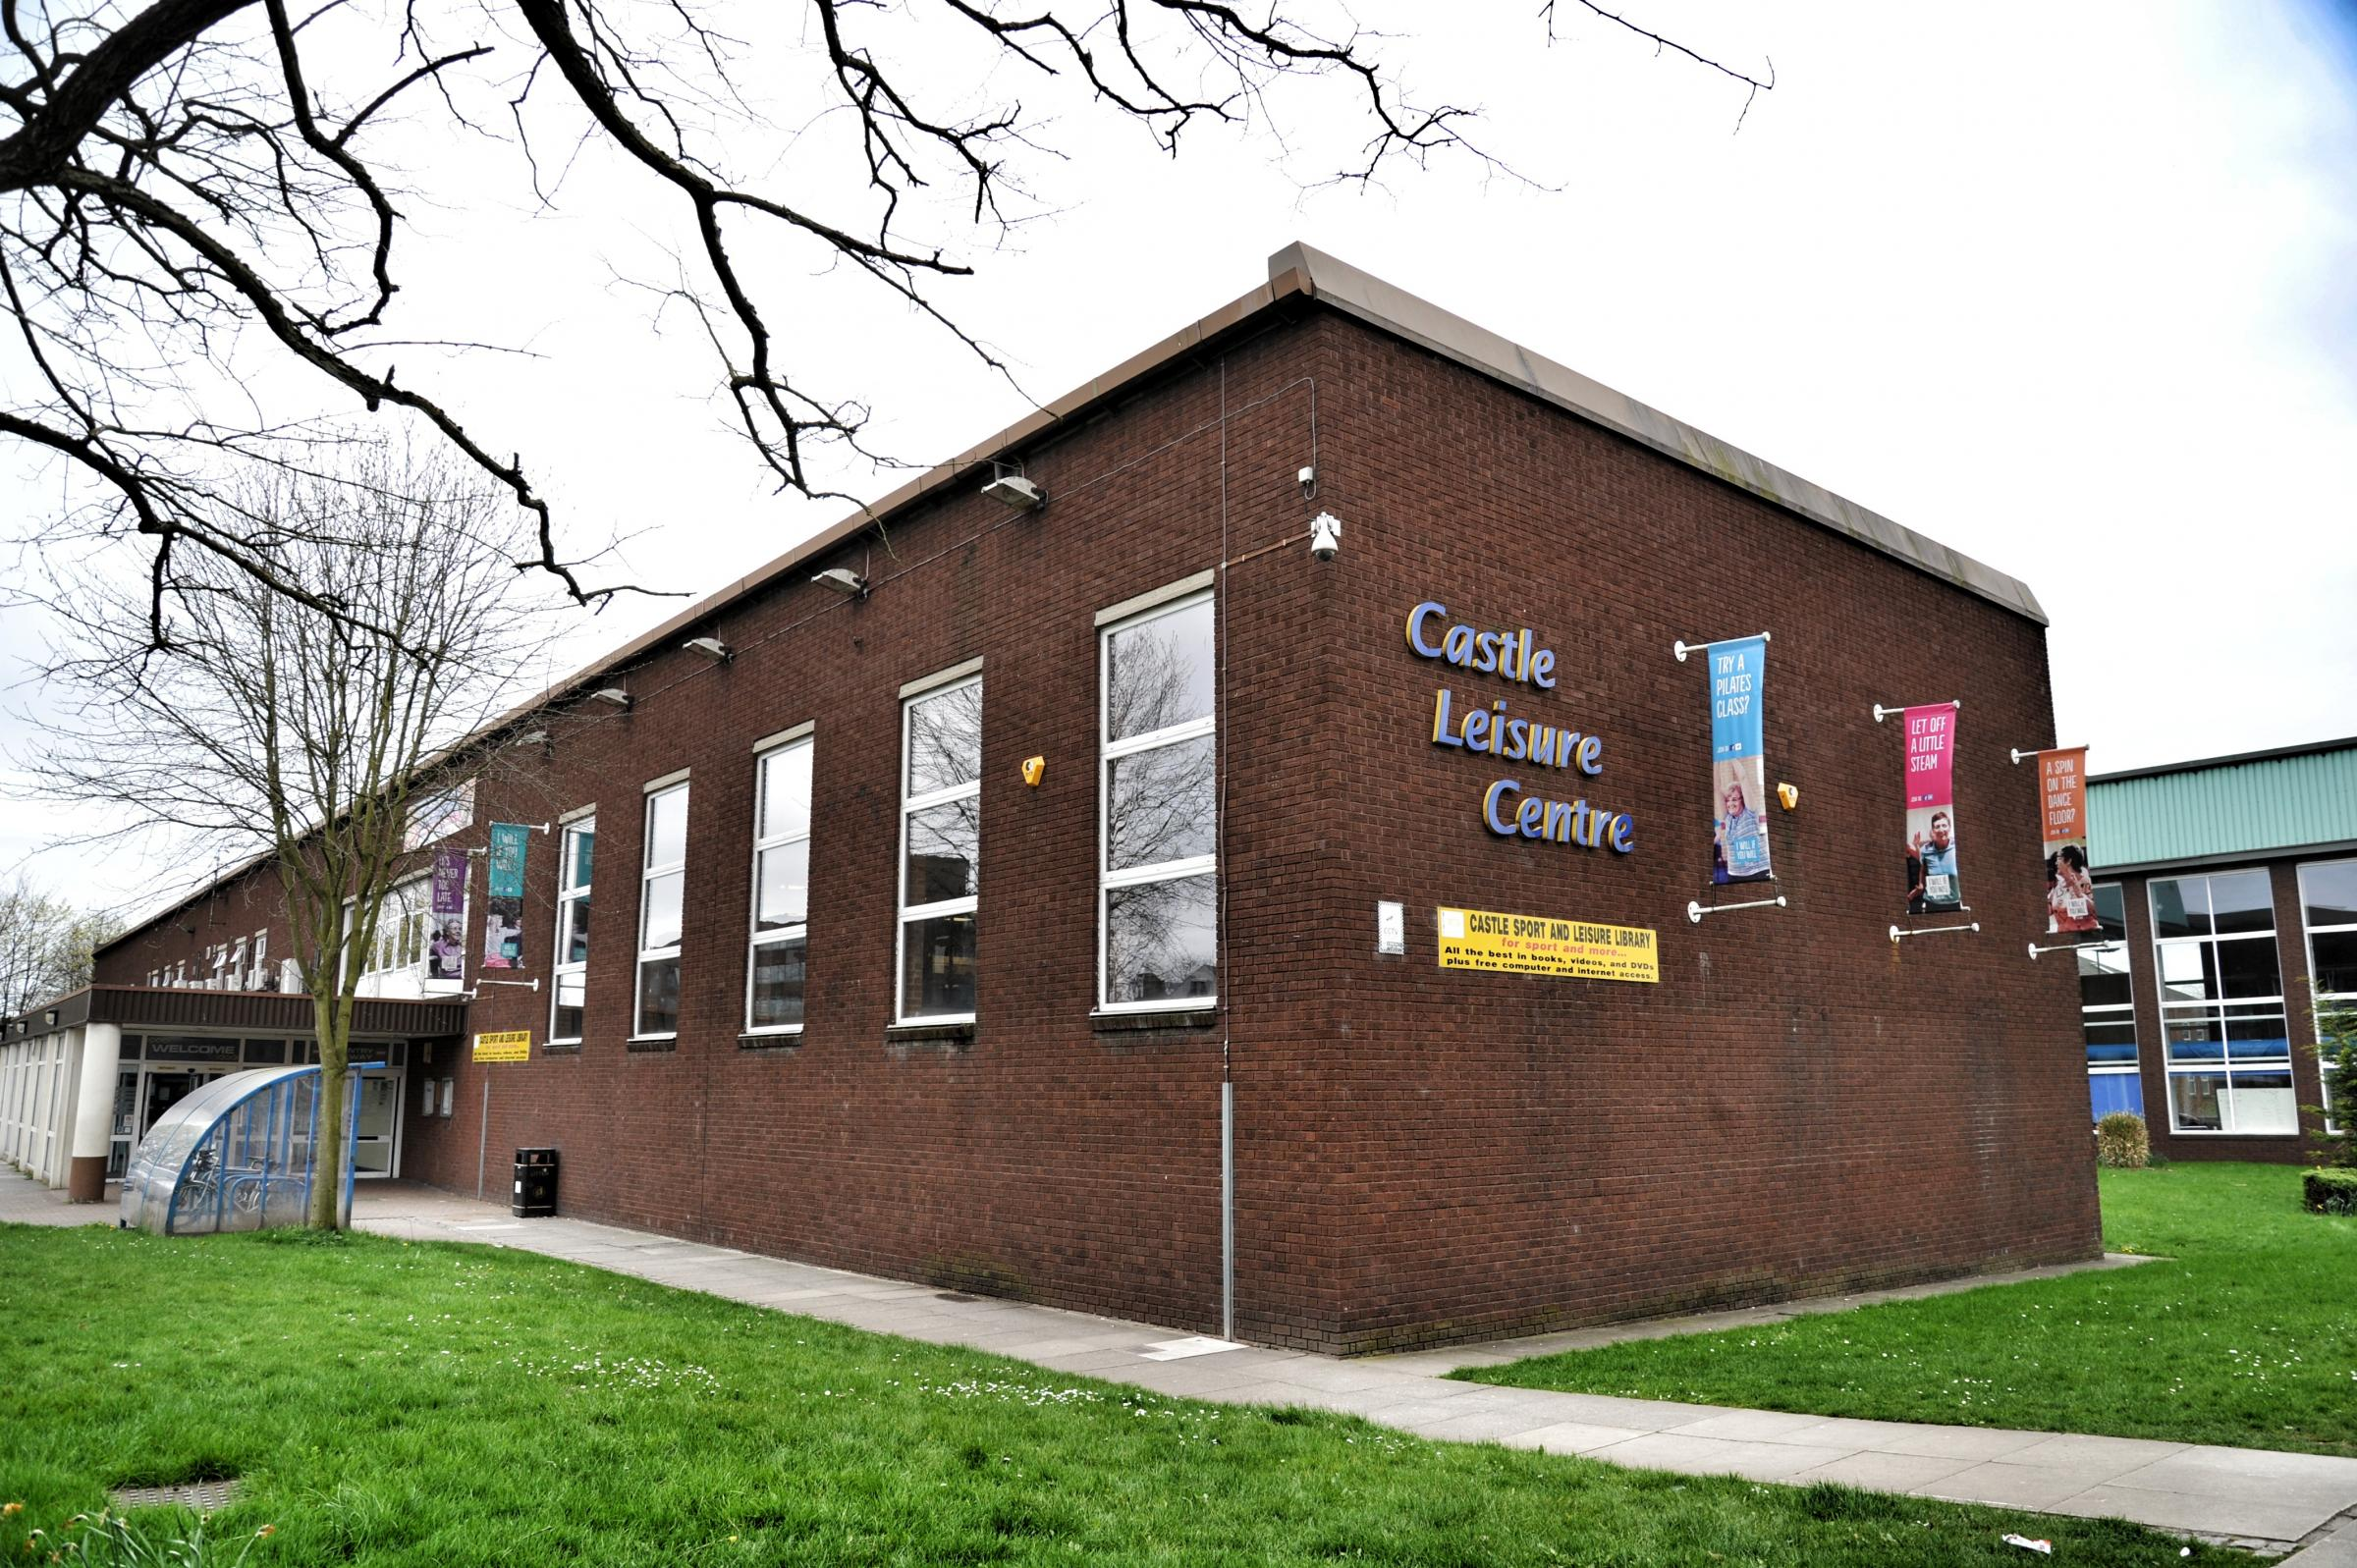 Castle Leisure Centre, Bury, where the council's Sport and Physical Activity Service is based.